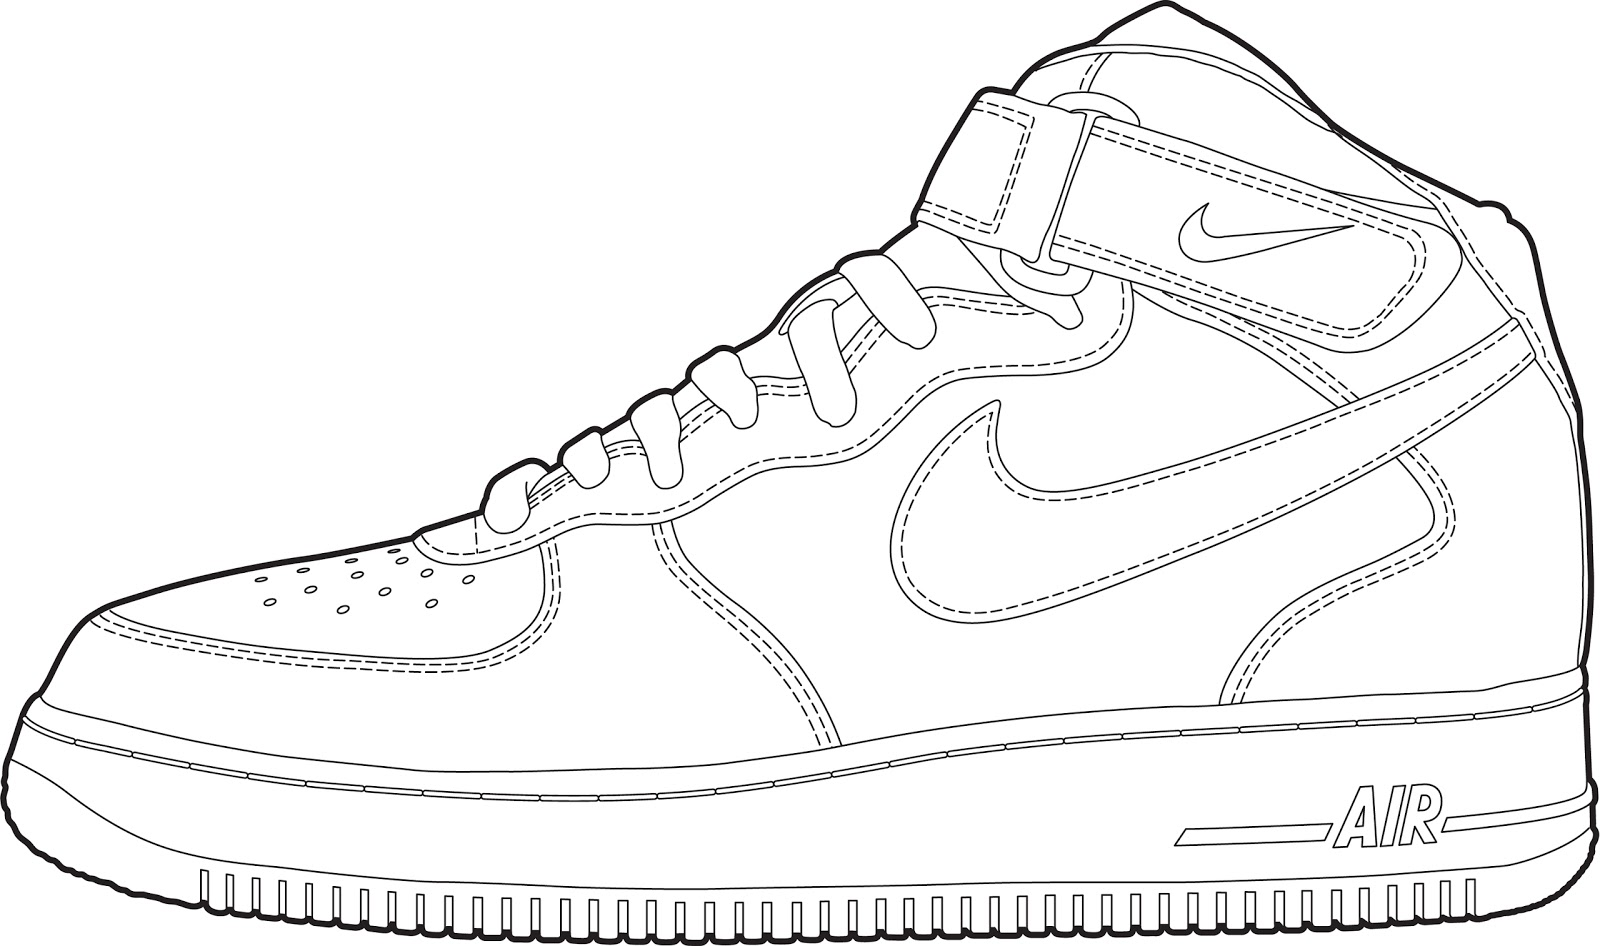 Free coloring pages jordan shoes - Air Force One Coloring Page